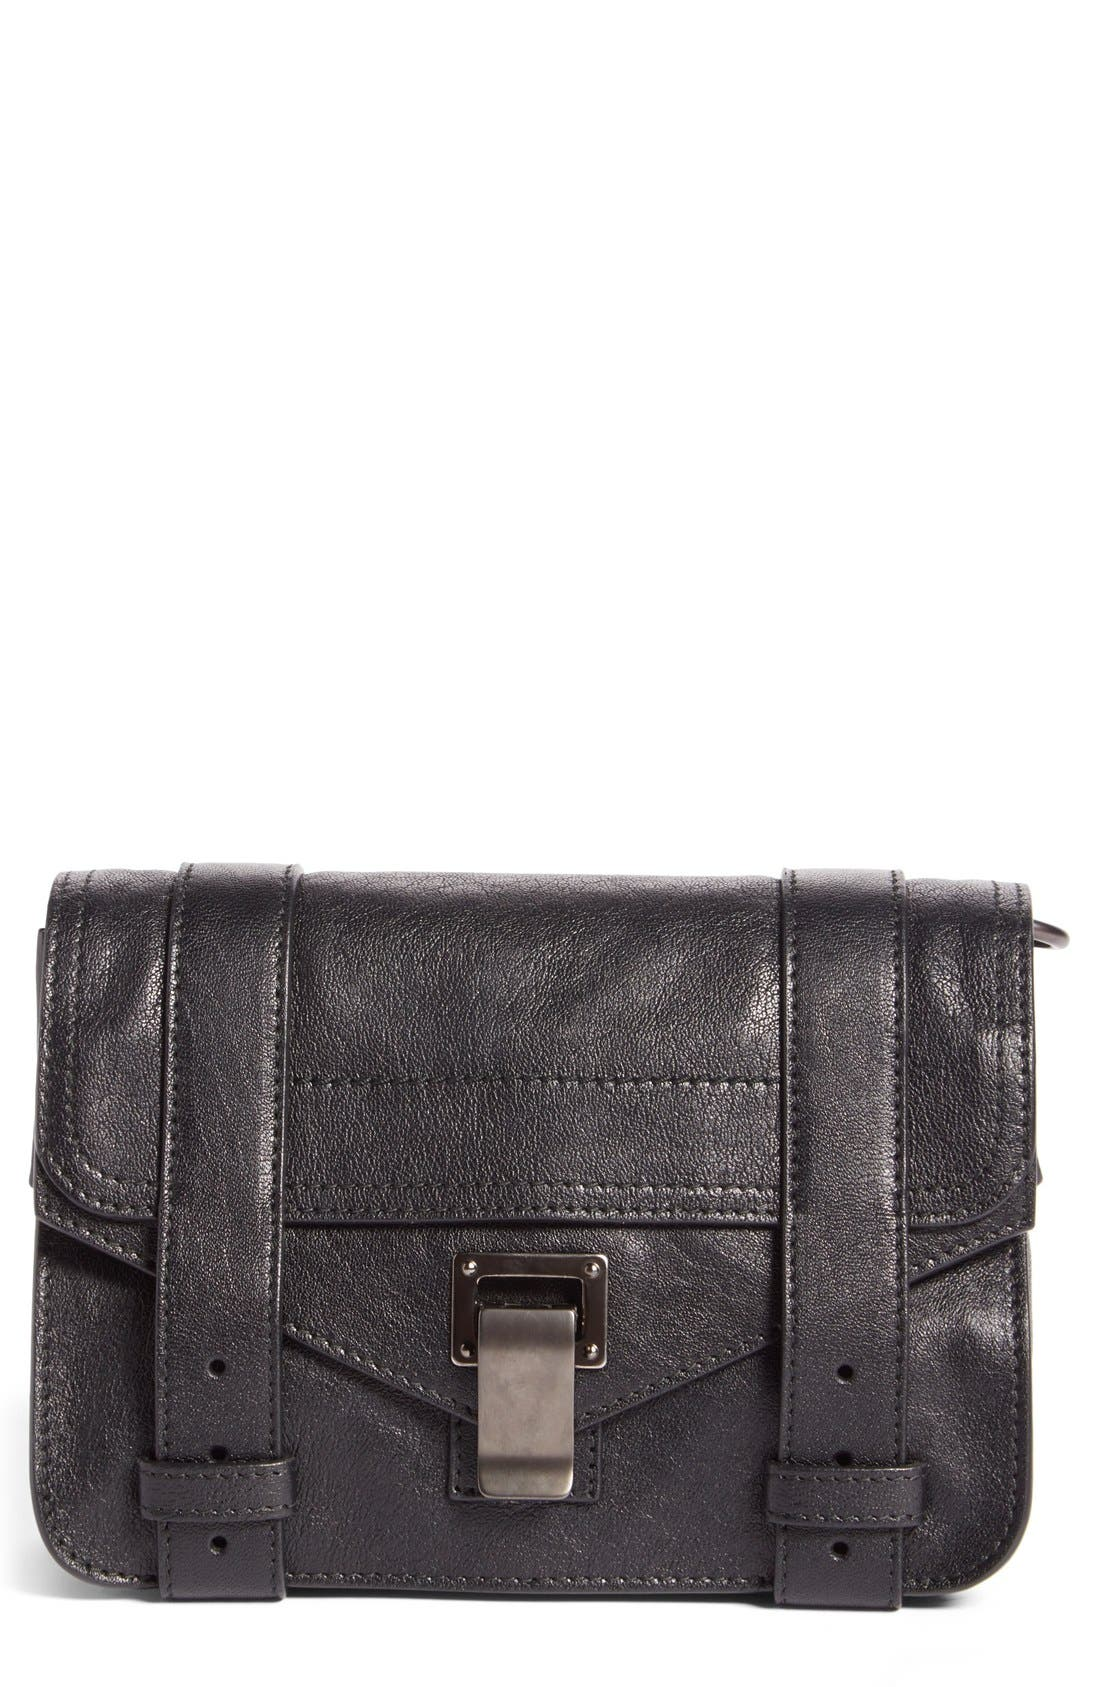 Proenza Schouler 'Mini PS1' Lambskin Leather Crossbody Bag